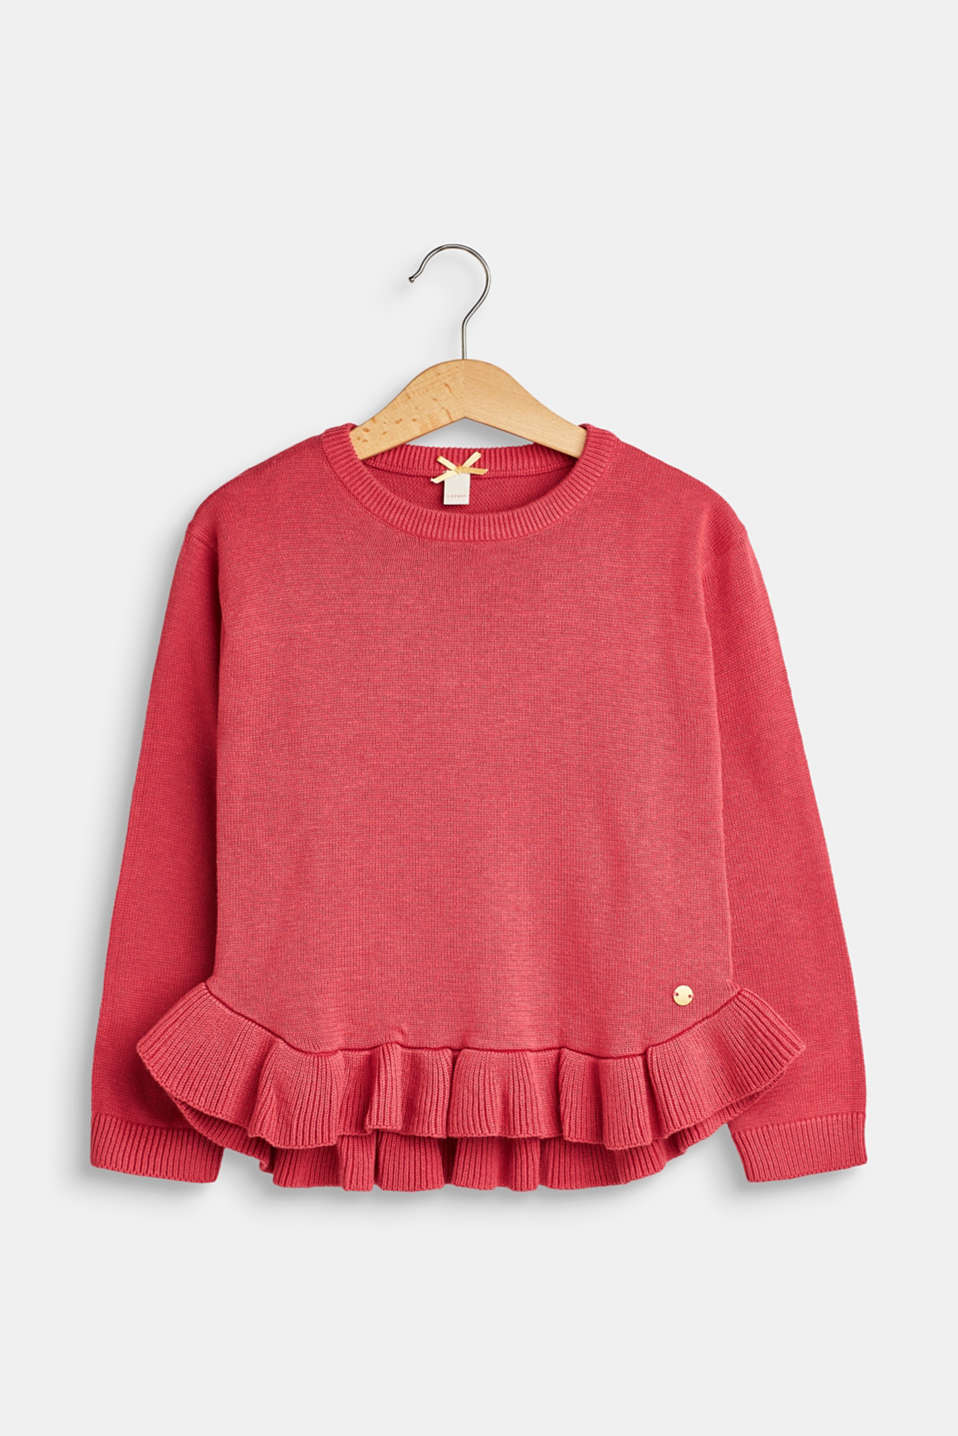 Esprit - Fine knit jumper with a frilled hem